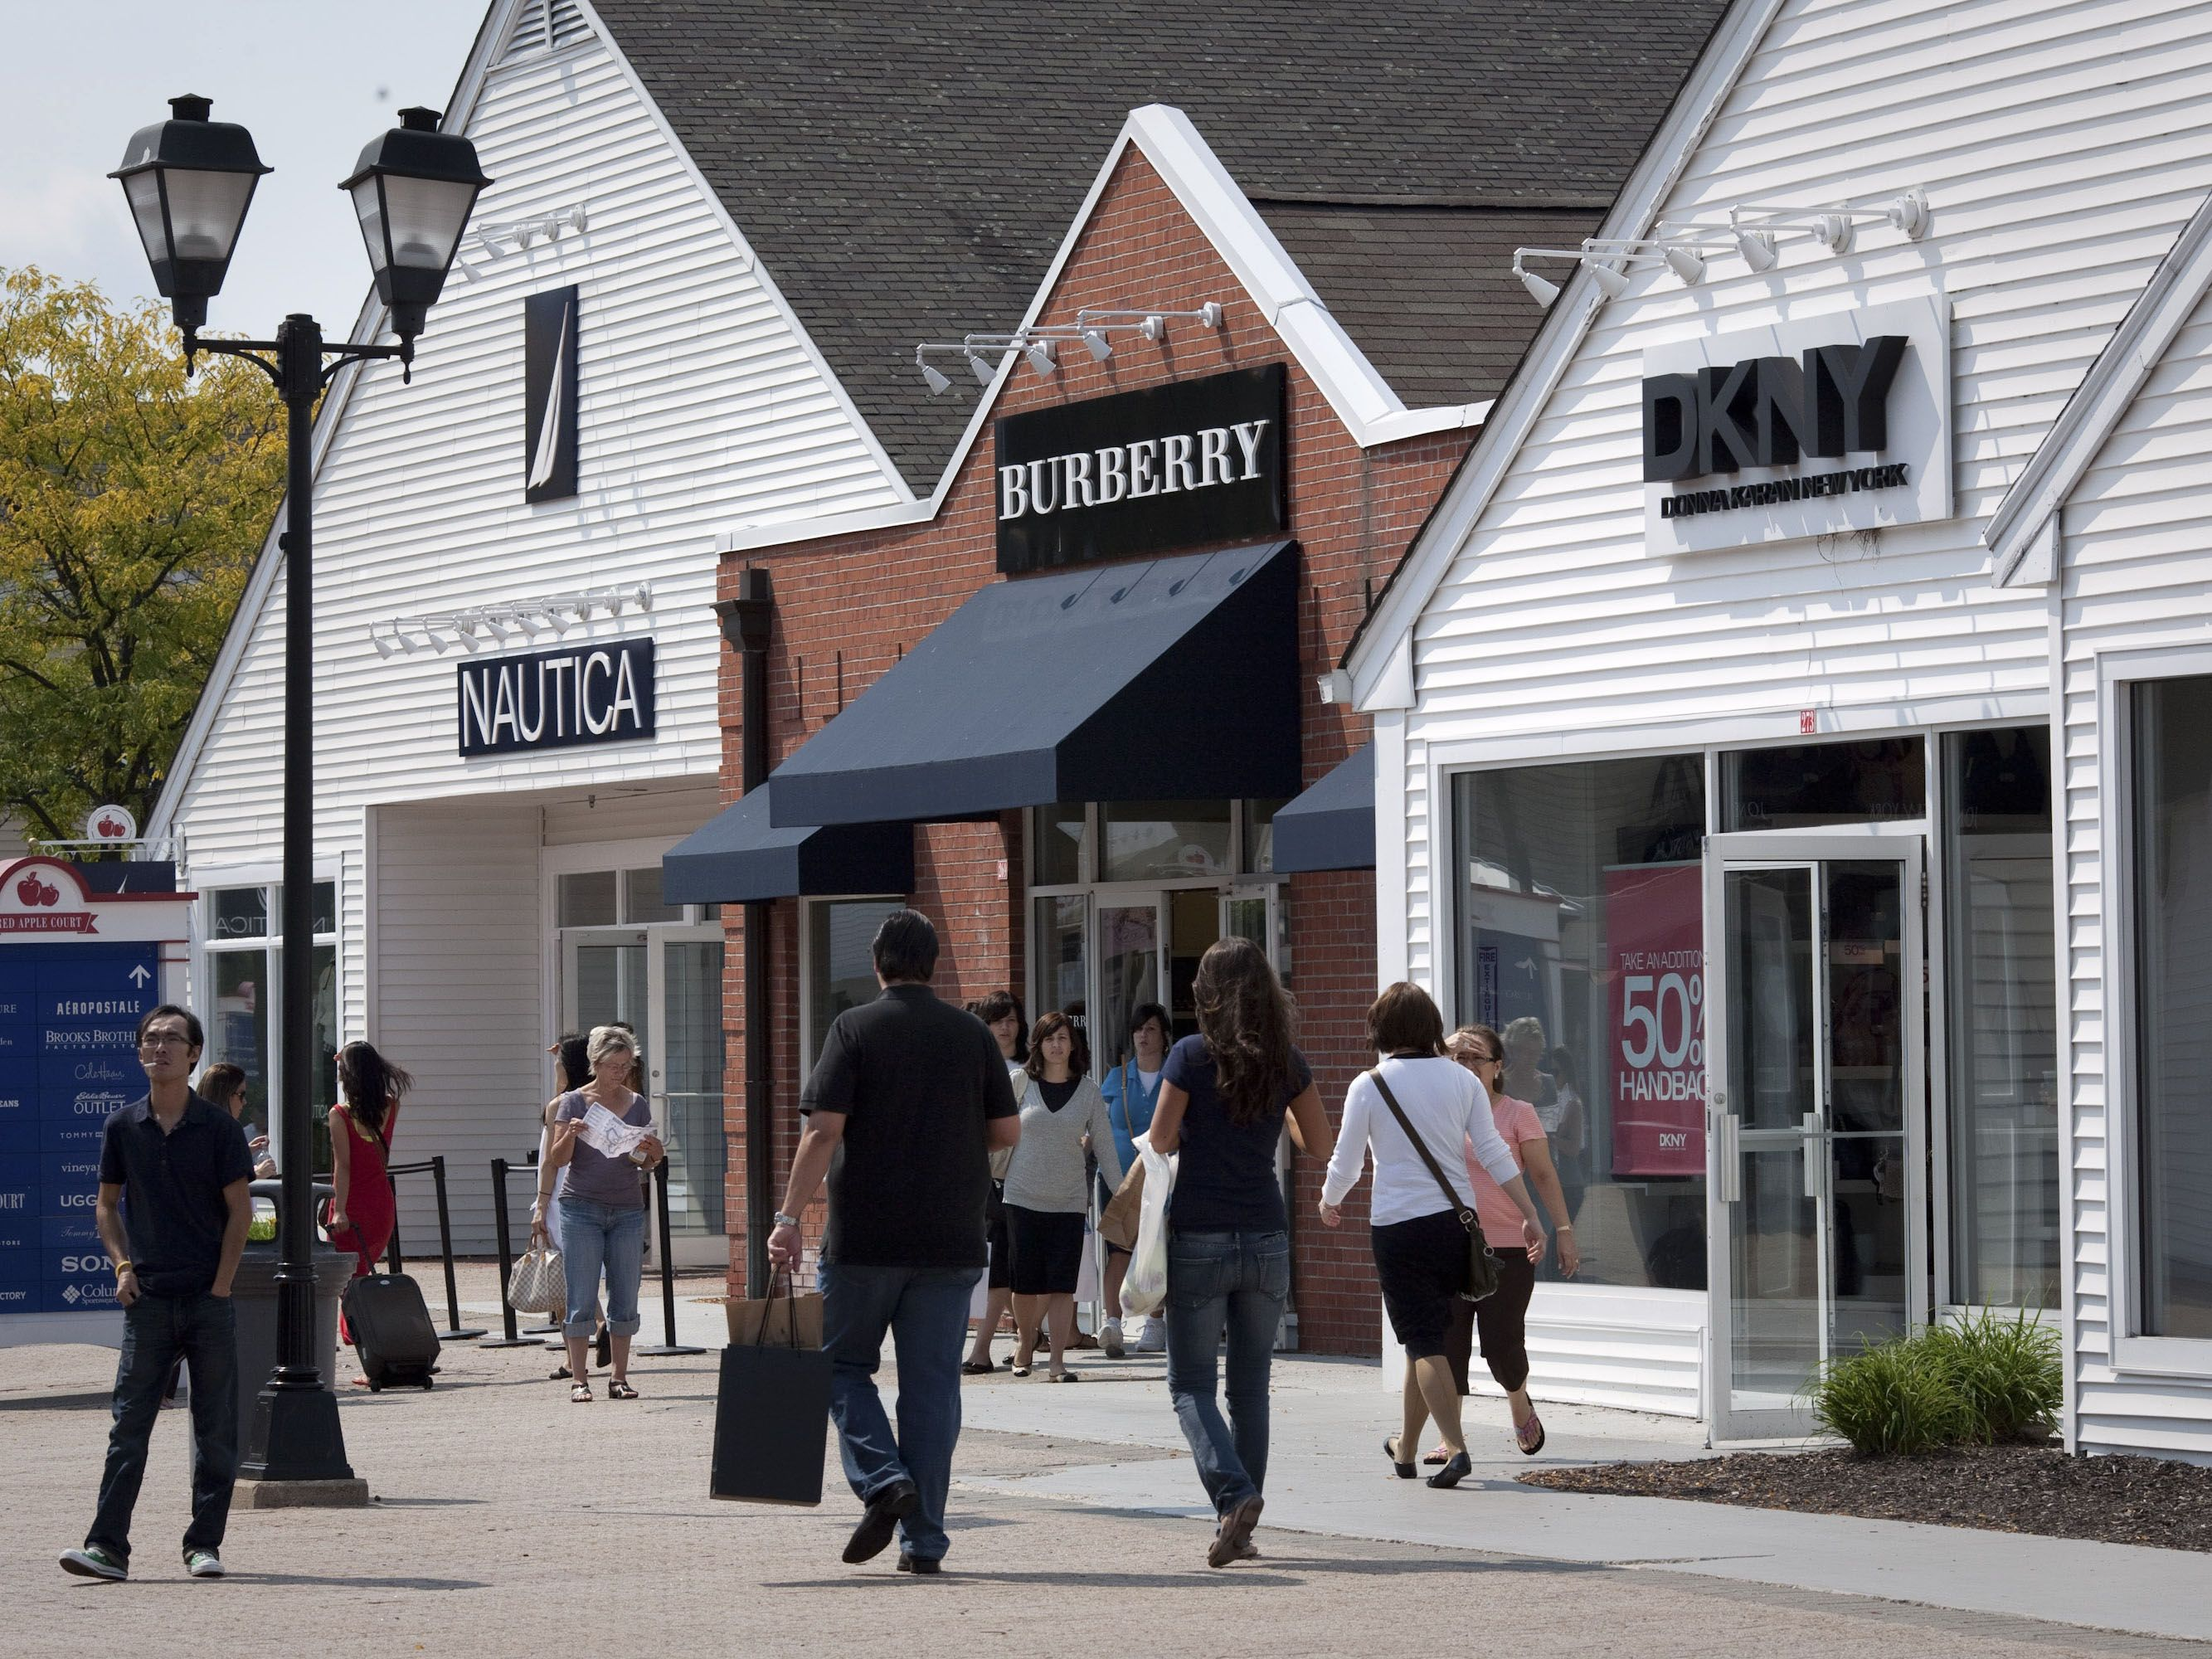 Aug 31, · While in New York, everyone likes to do a little shopping. However, prices can be way too expensive in Manhattan. This Woodbury Common Premium Outlets shopping tour takes you outside of NYC to shop big designer-name brands at lower prices/5().